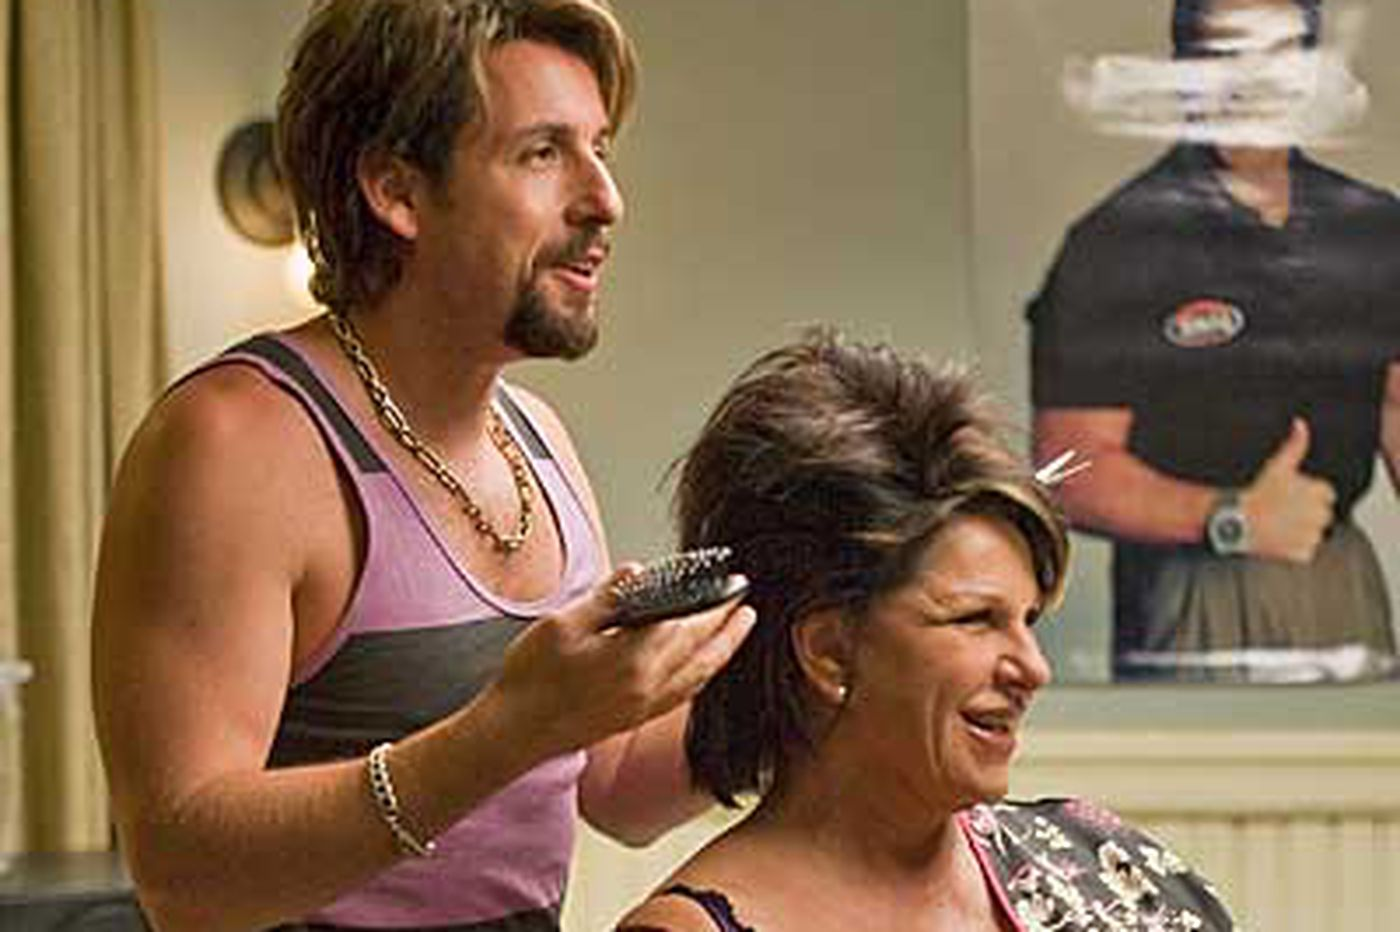 'Zohan's' silly, separate peace